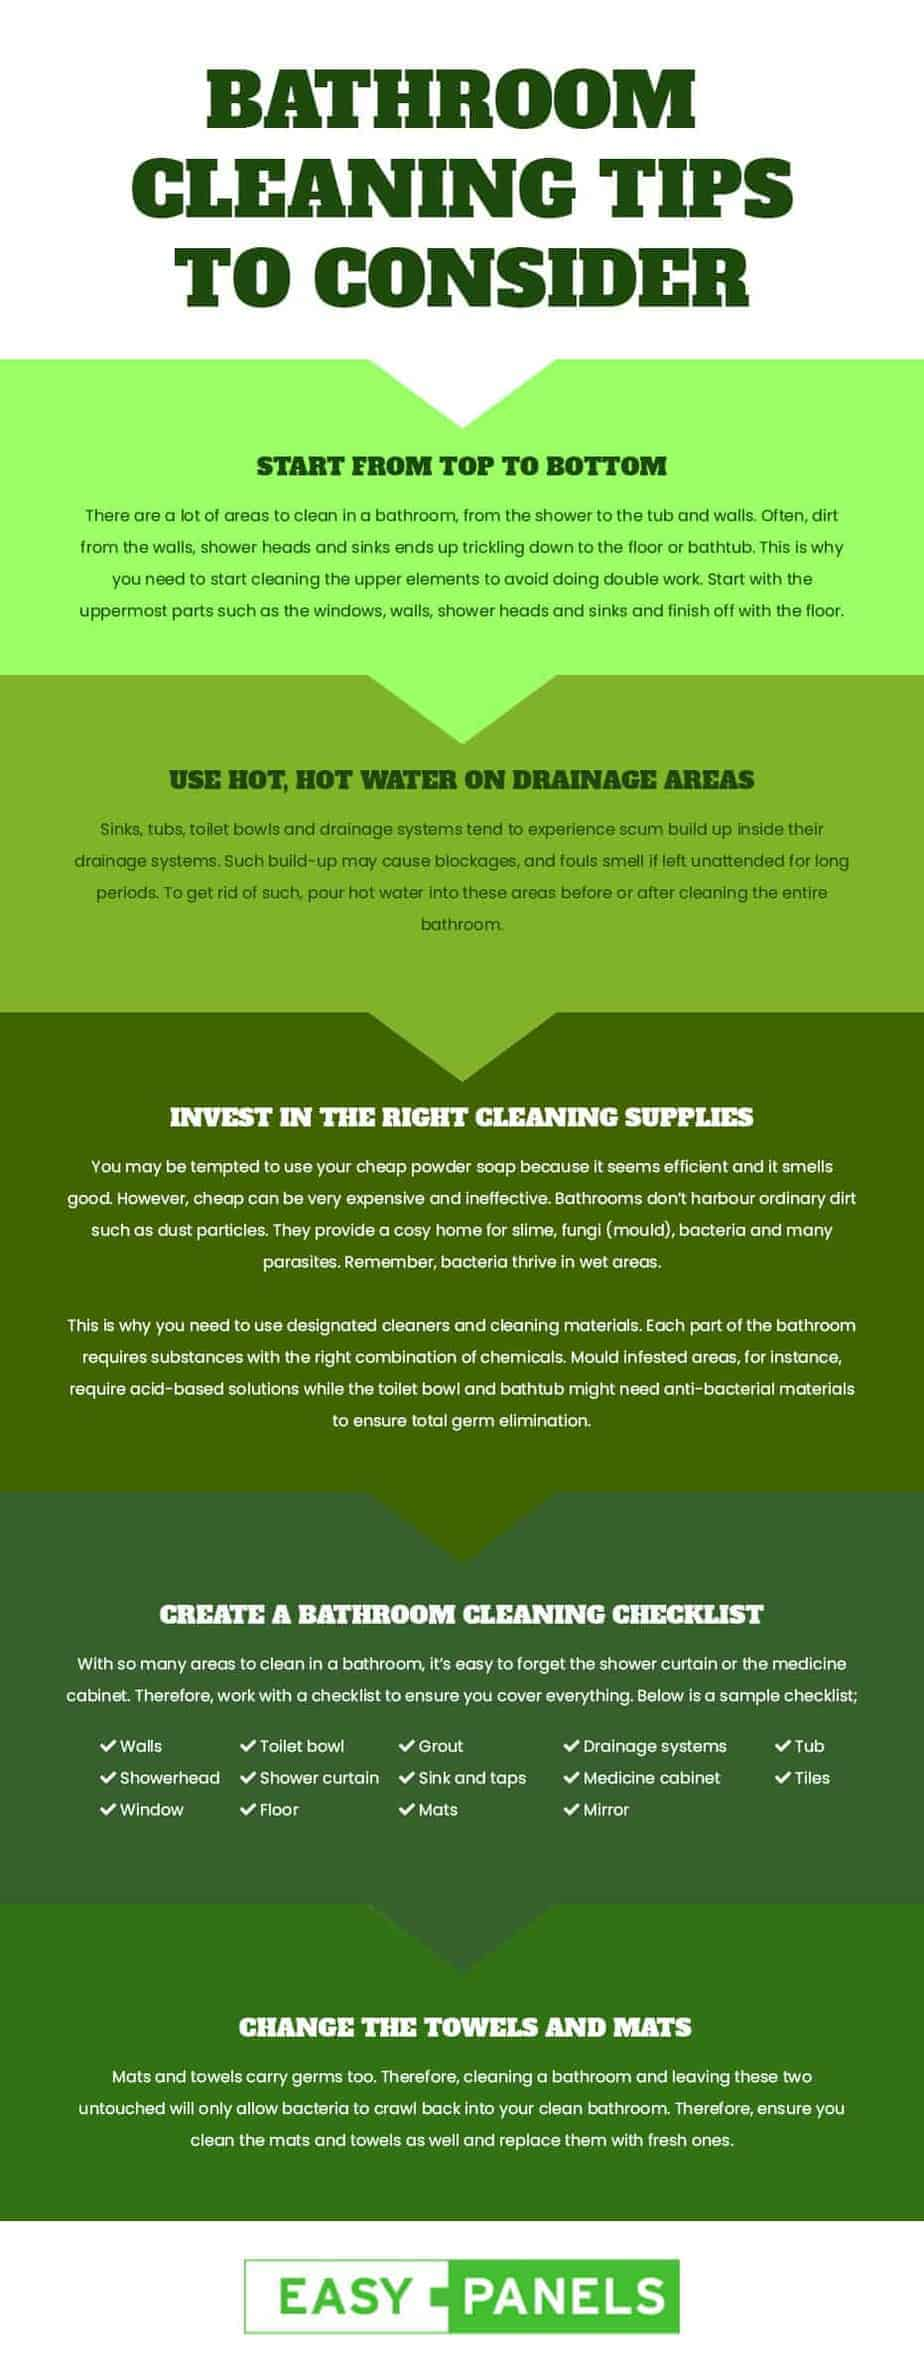 BATHROOM CLEANING TIPS TO CONSIDER